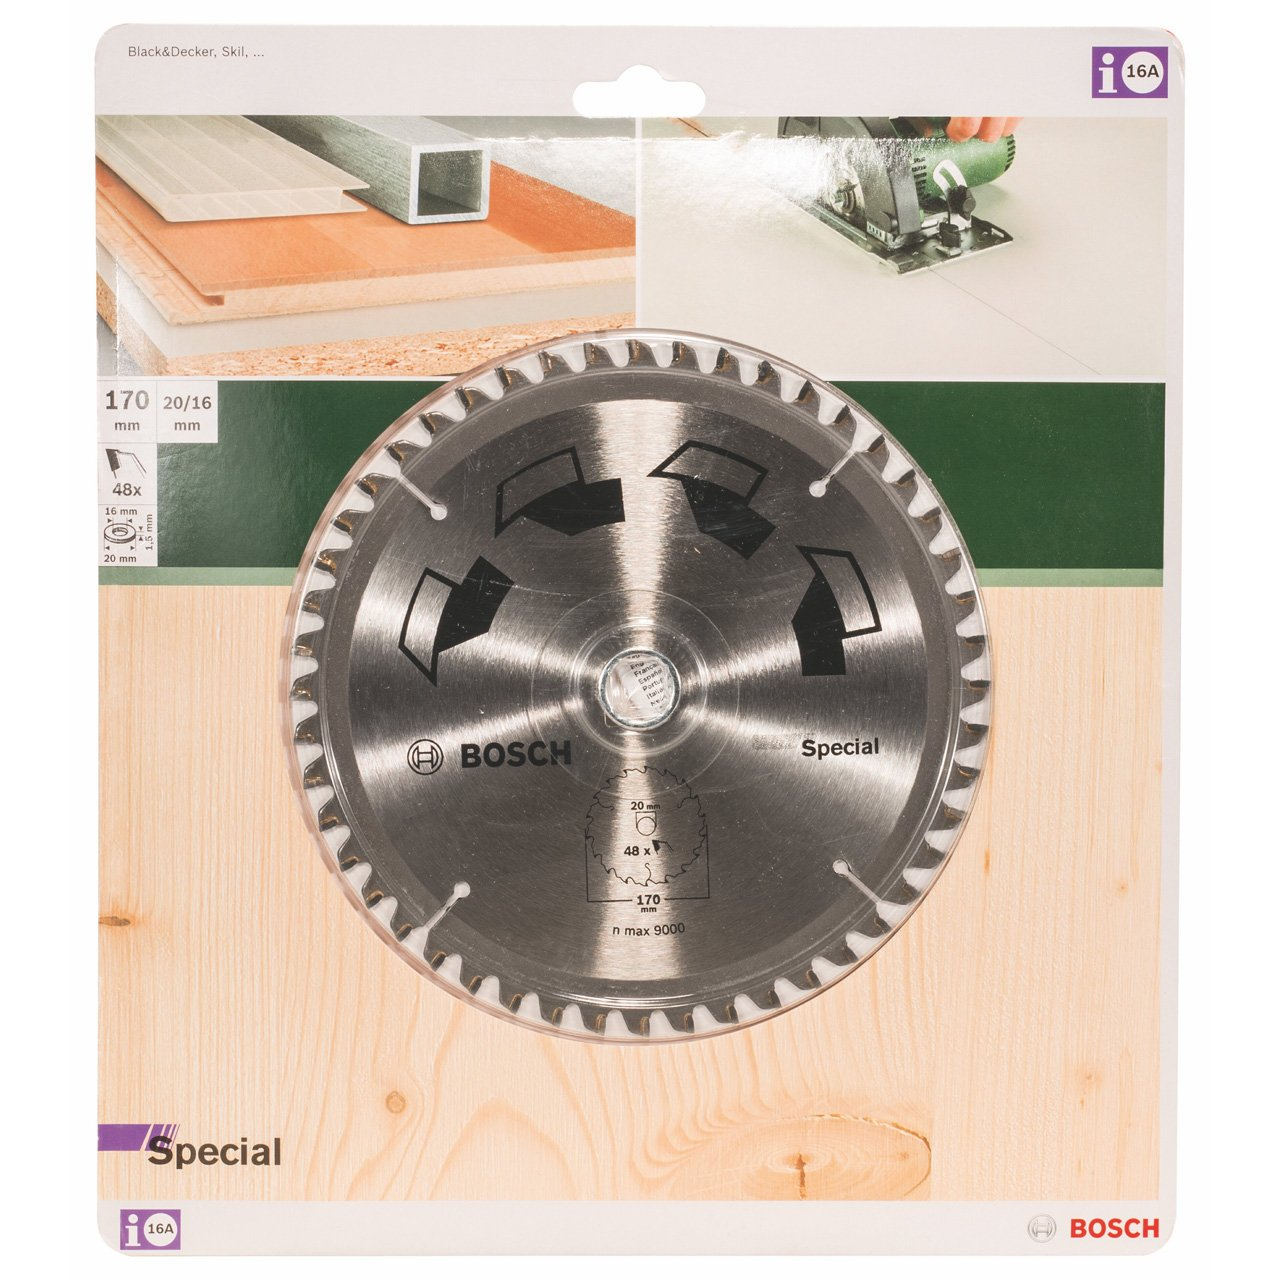 Bosch 2609256888 170 mm circular saw blade special amazon bosch 2609256888 170 mm circular saw blade special amazon diy tools greentooth Image collections